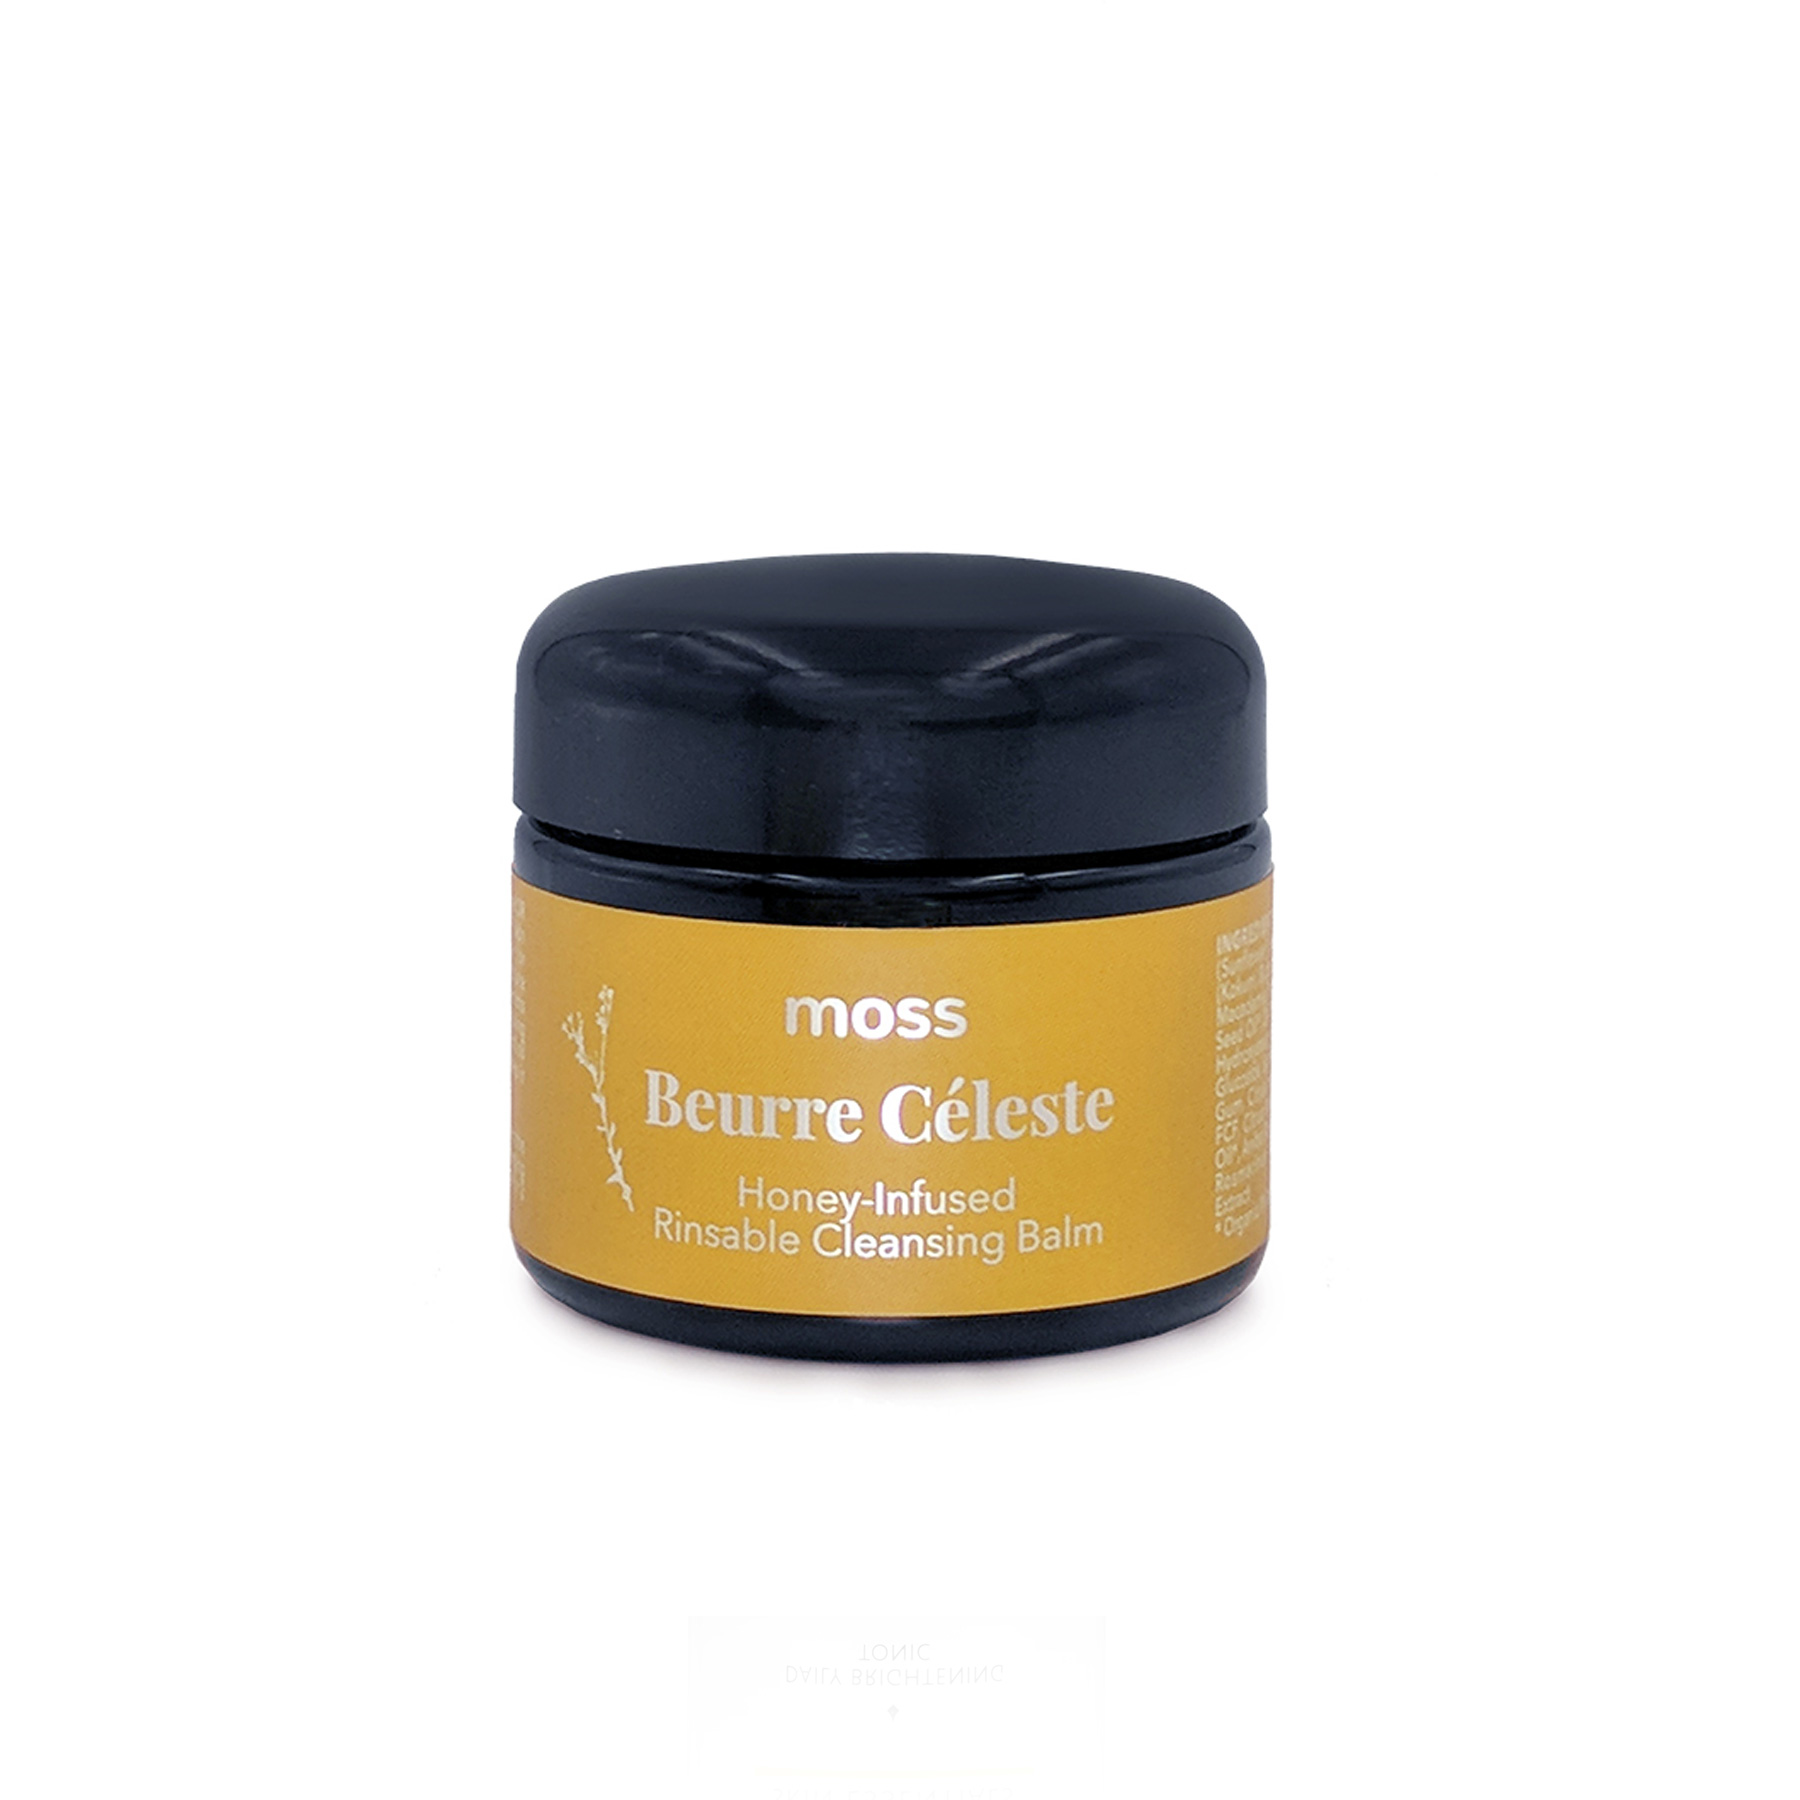 Beurre Céleste Rinsable Cleansing Balm • $70   Cleansing balm  Moisture-rich balm melts off makeup and sunscreen, rinses easily.  Use as a 1st step of double cleanse.